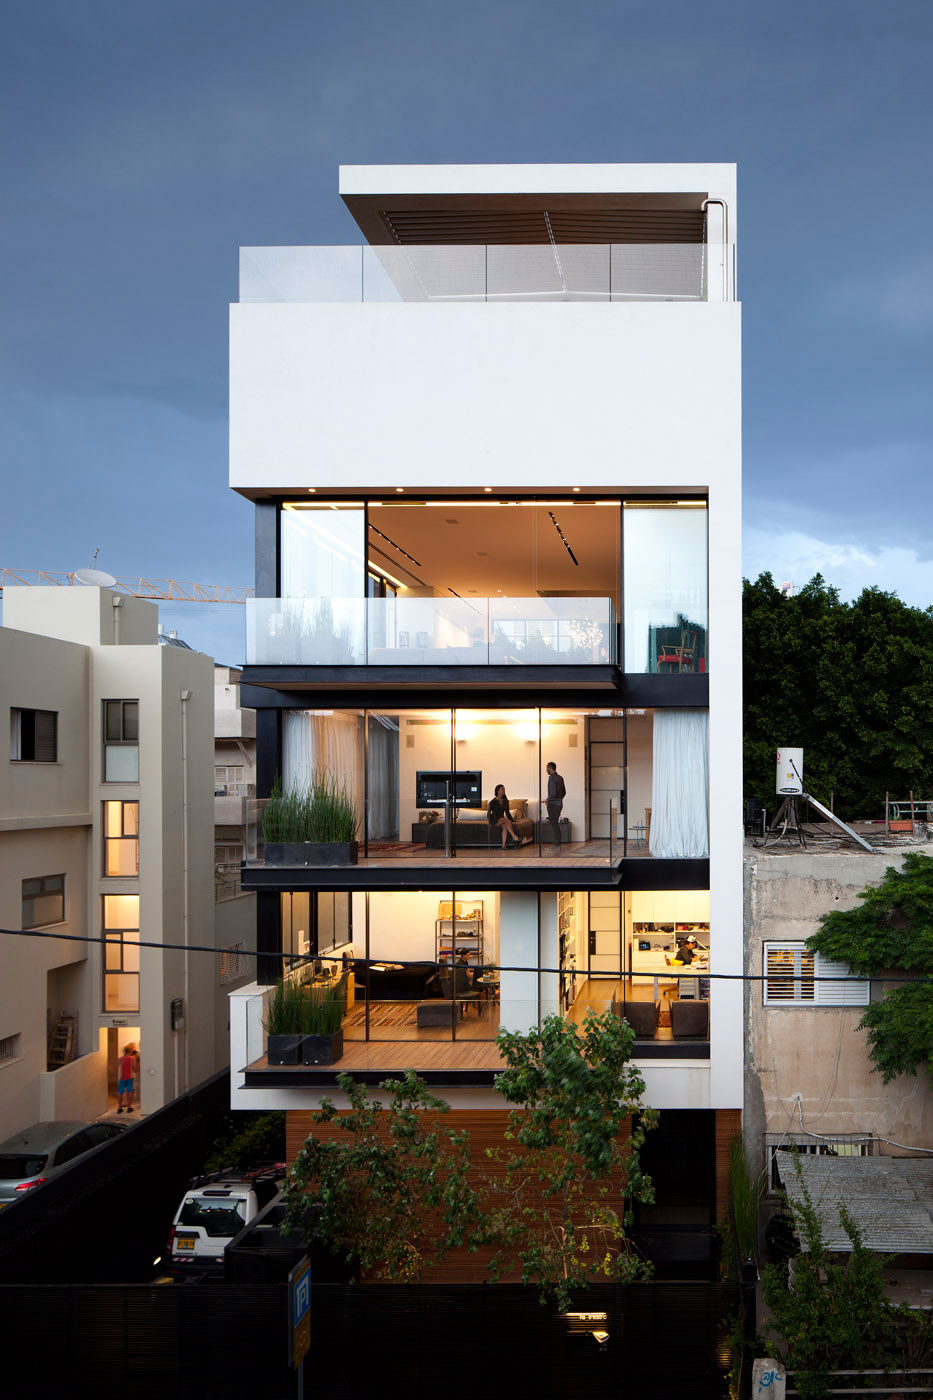 Perfect tel aviv town house 1 by pitsou kedem architect Picture perfect house